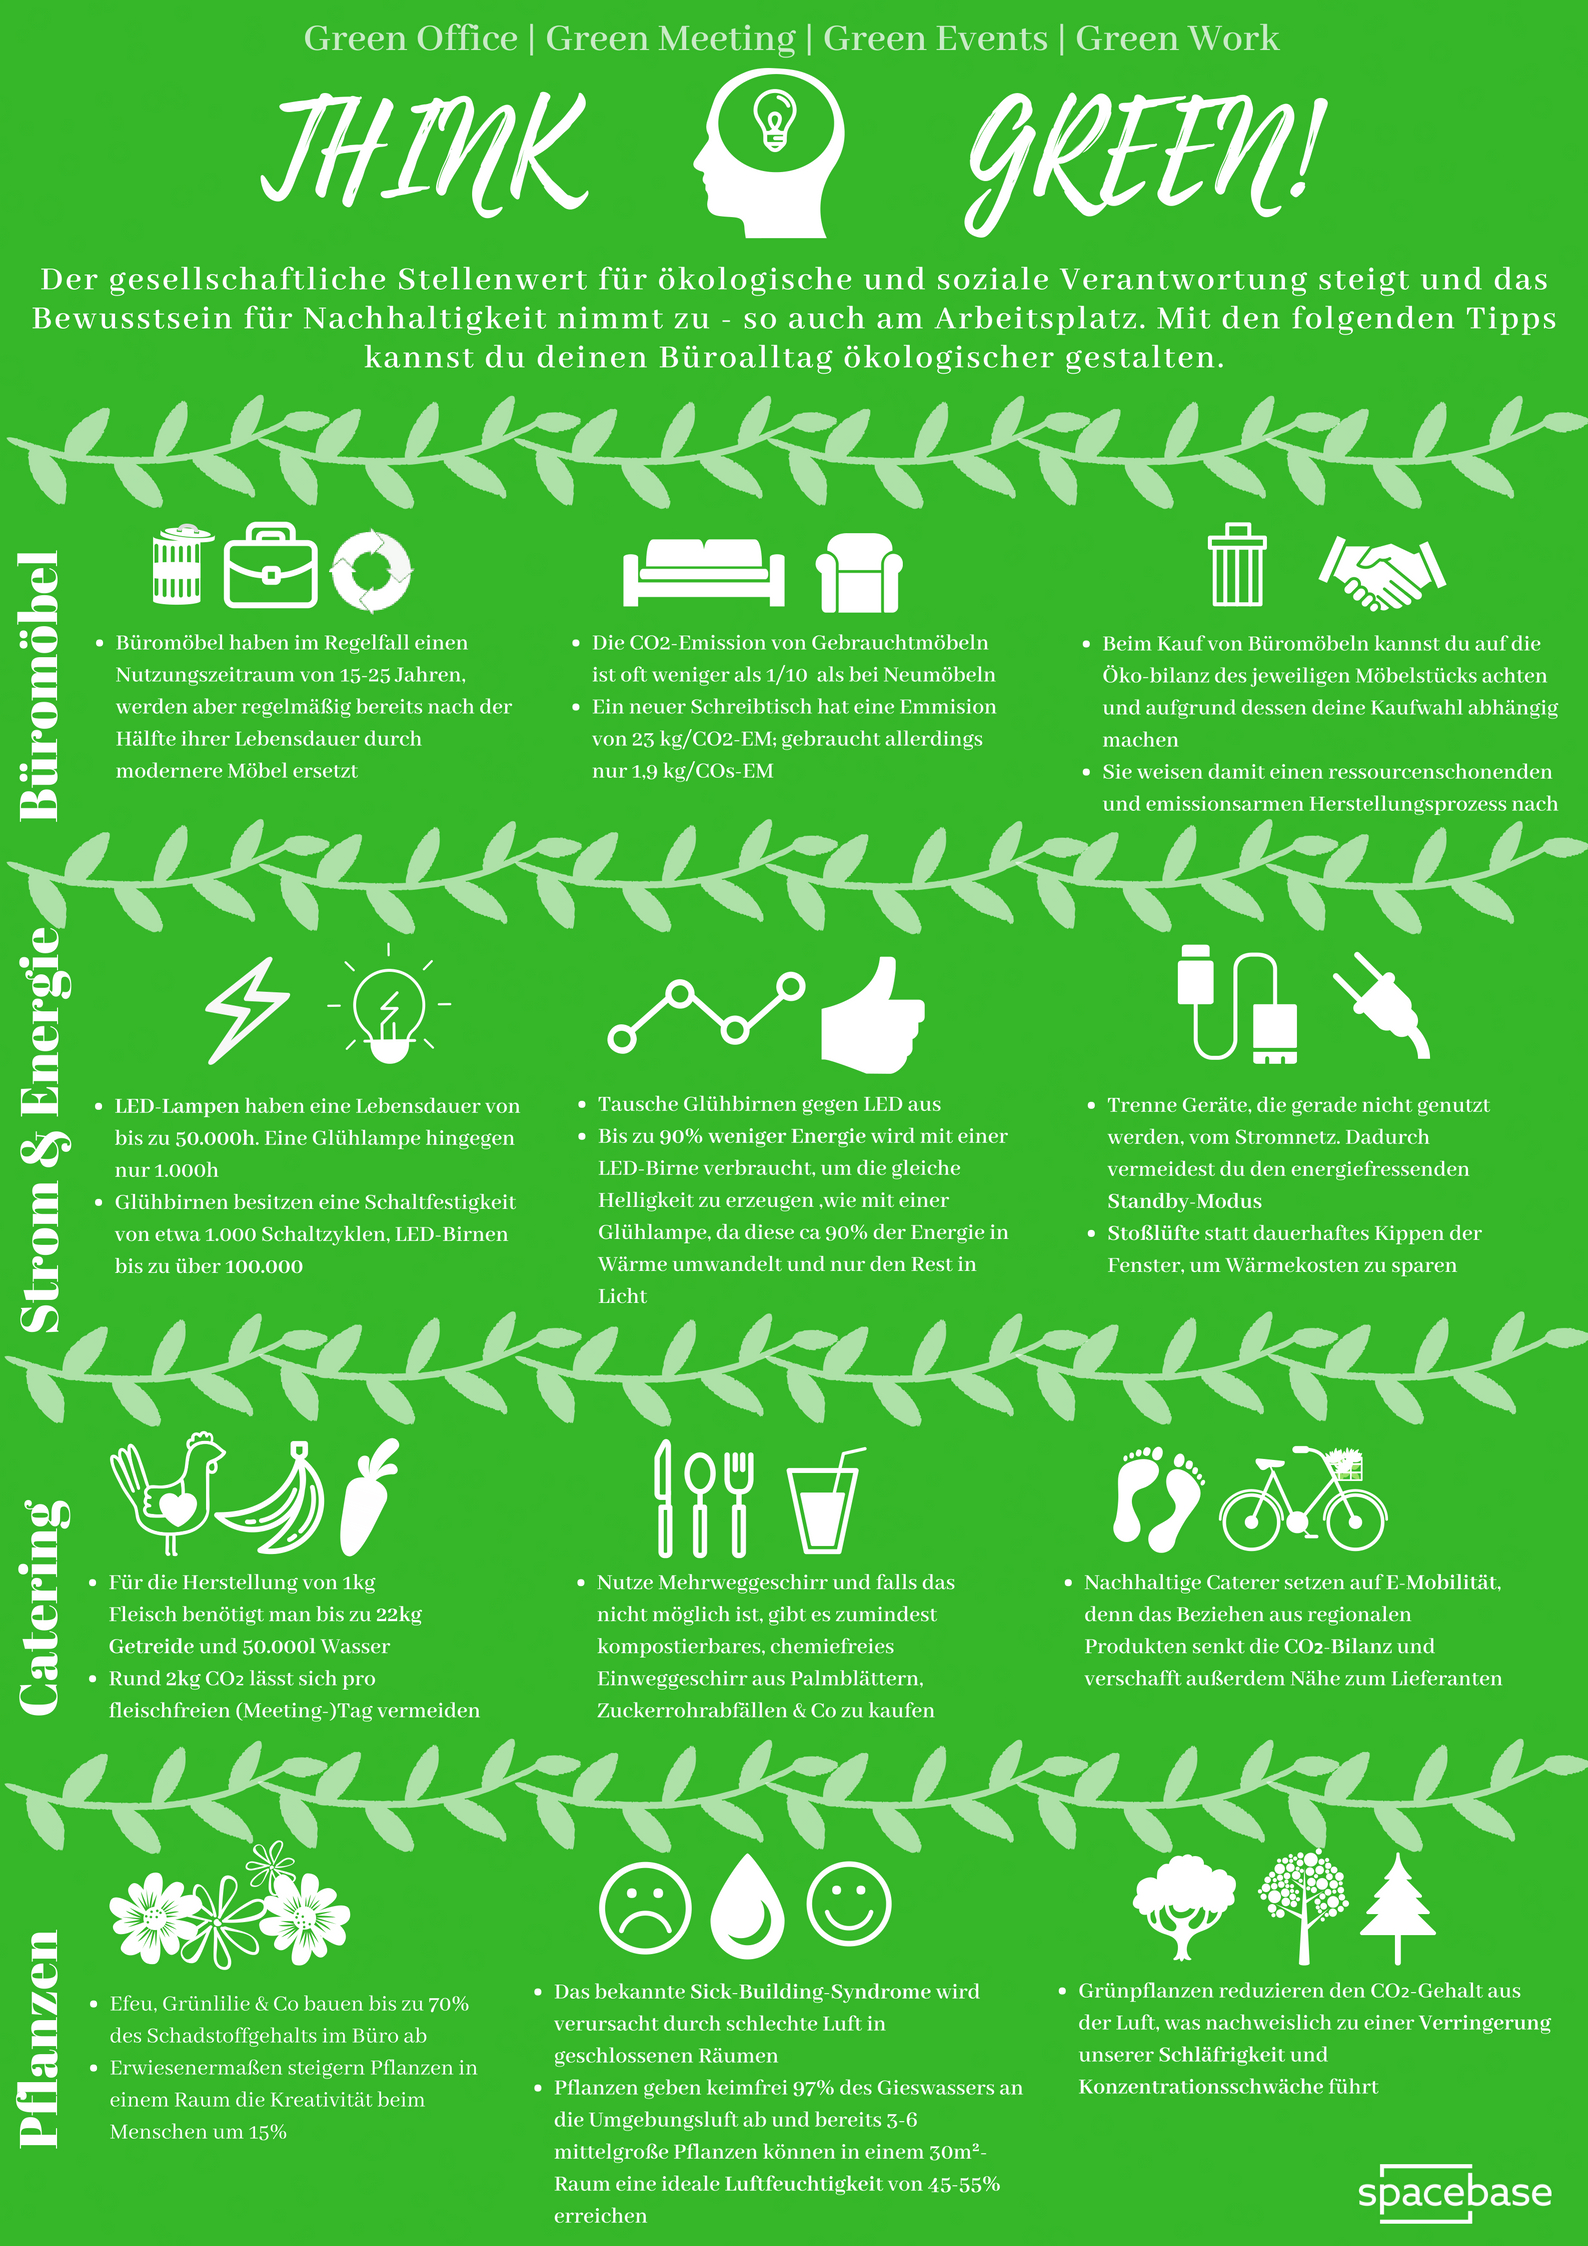 Think Green - key facts